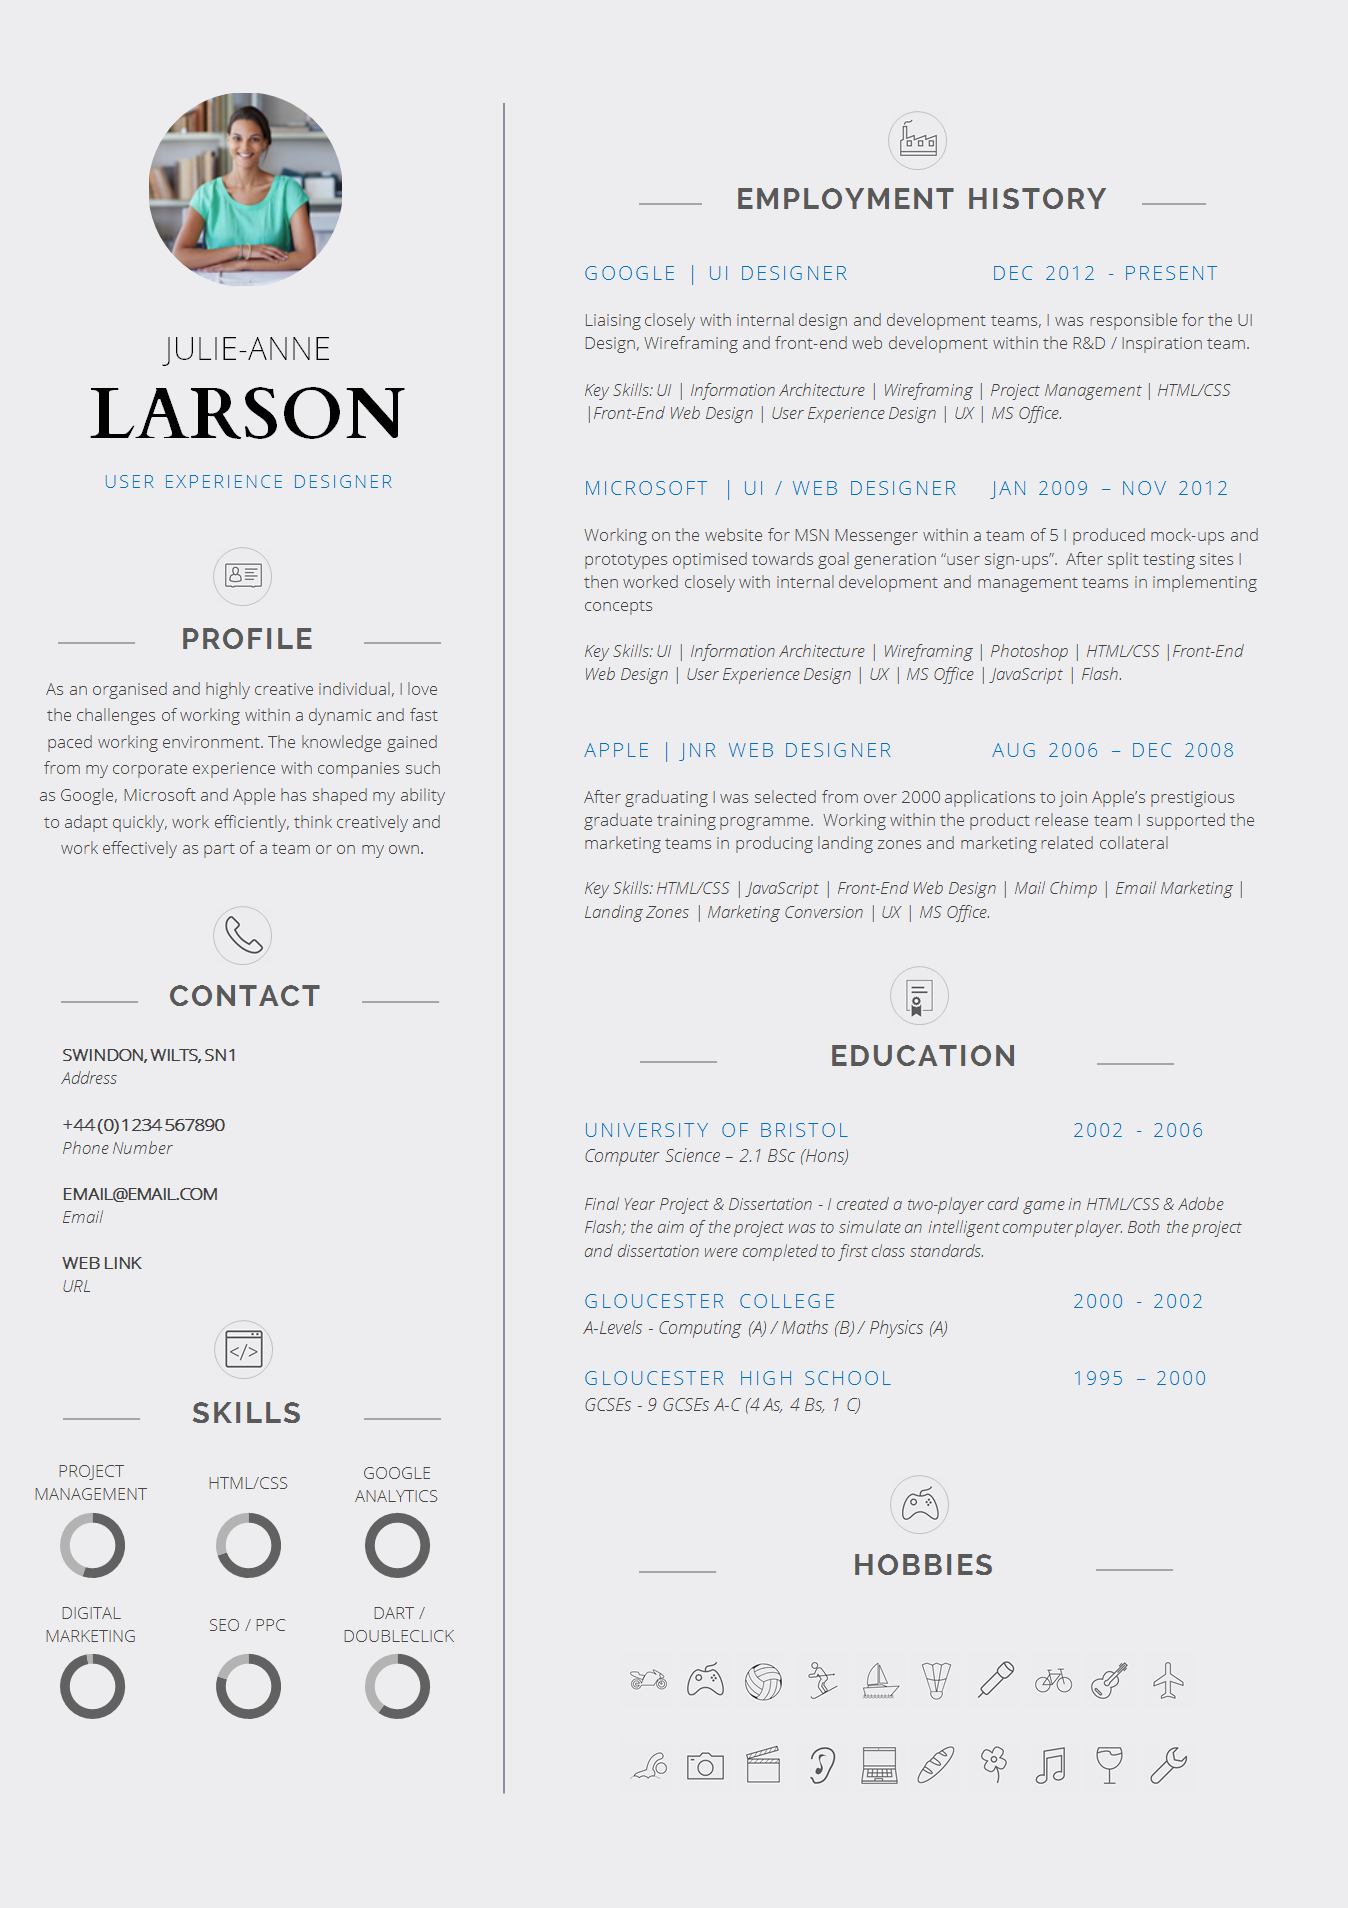 13 Slick and Highly Professional CV Templates – Templates for Professional Resumes